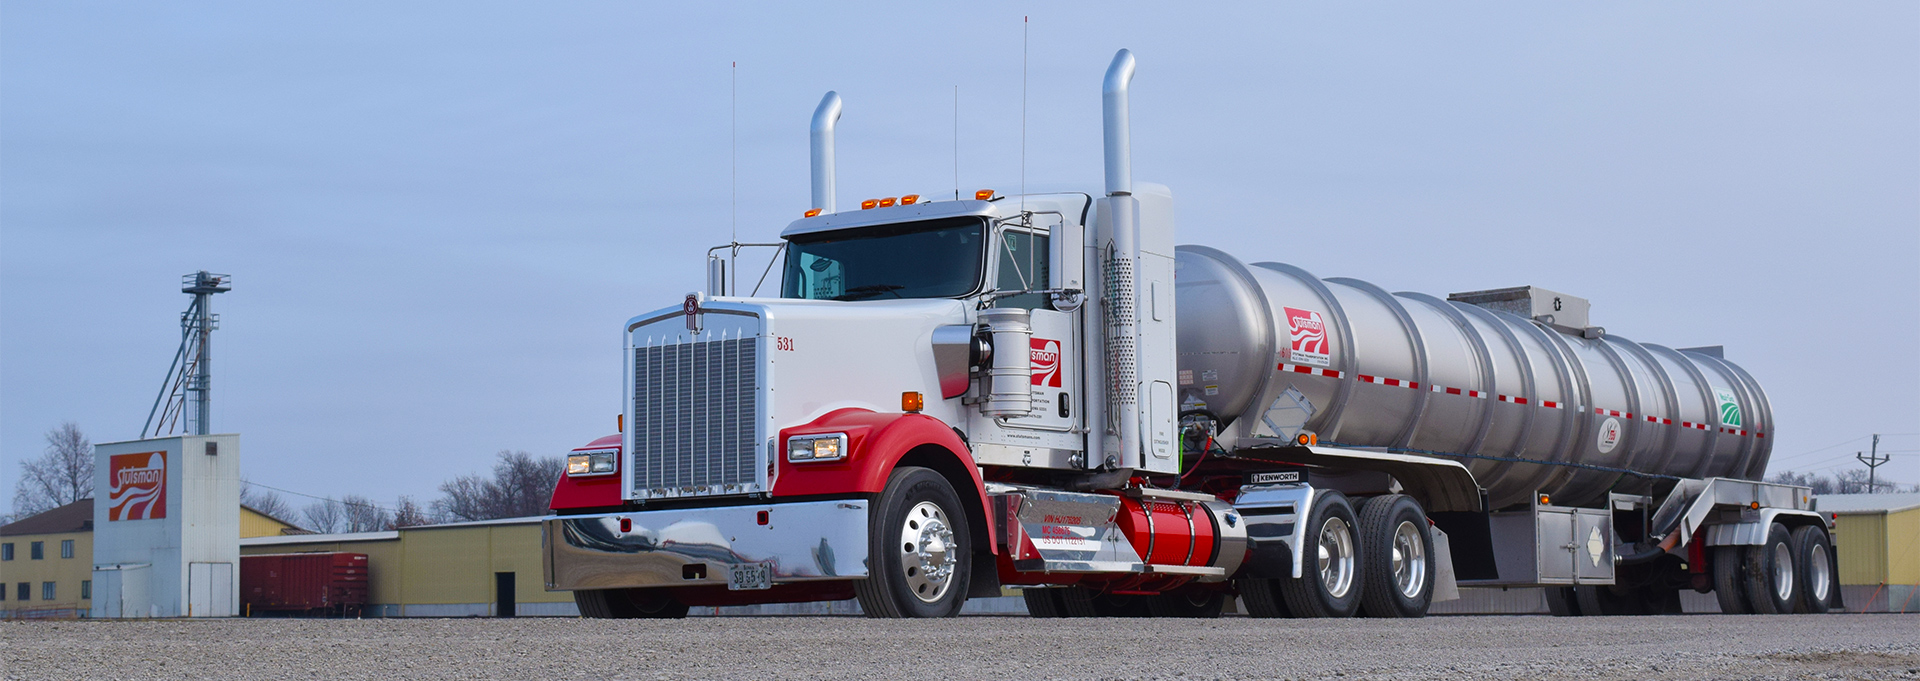 Stutsman-Transportation-Inc-Kenworth-Fertilizer-Hauling